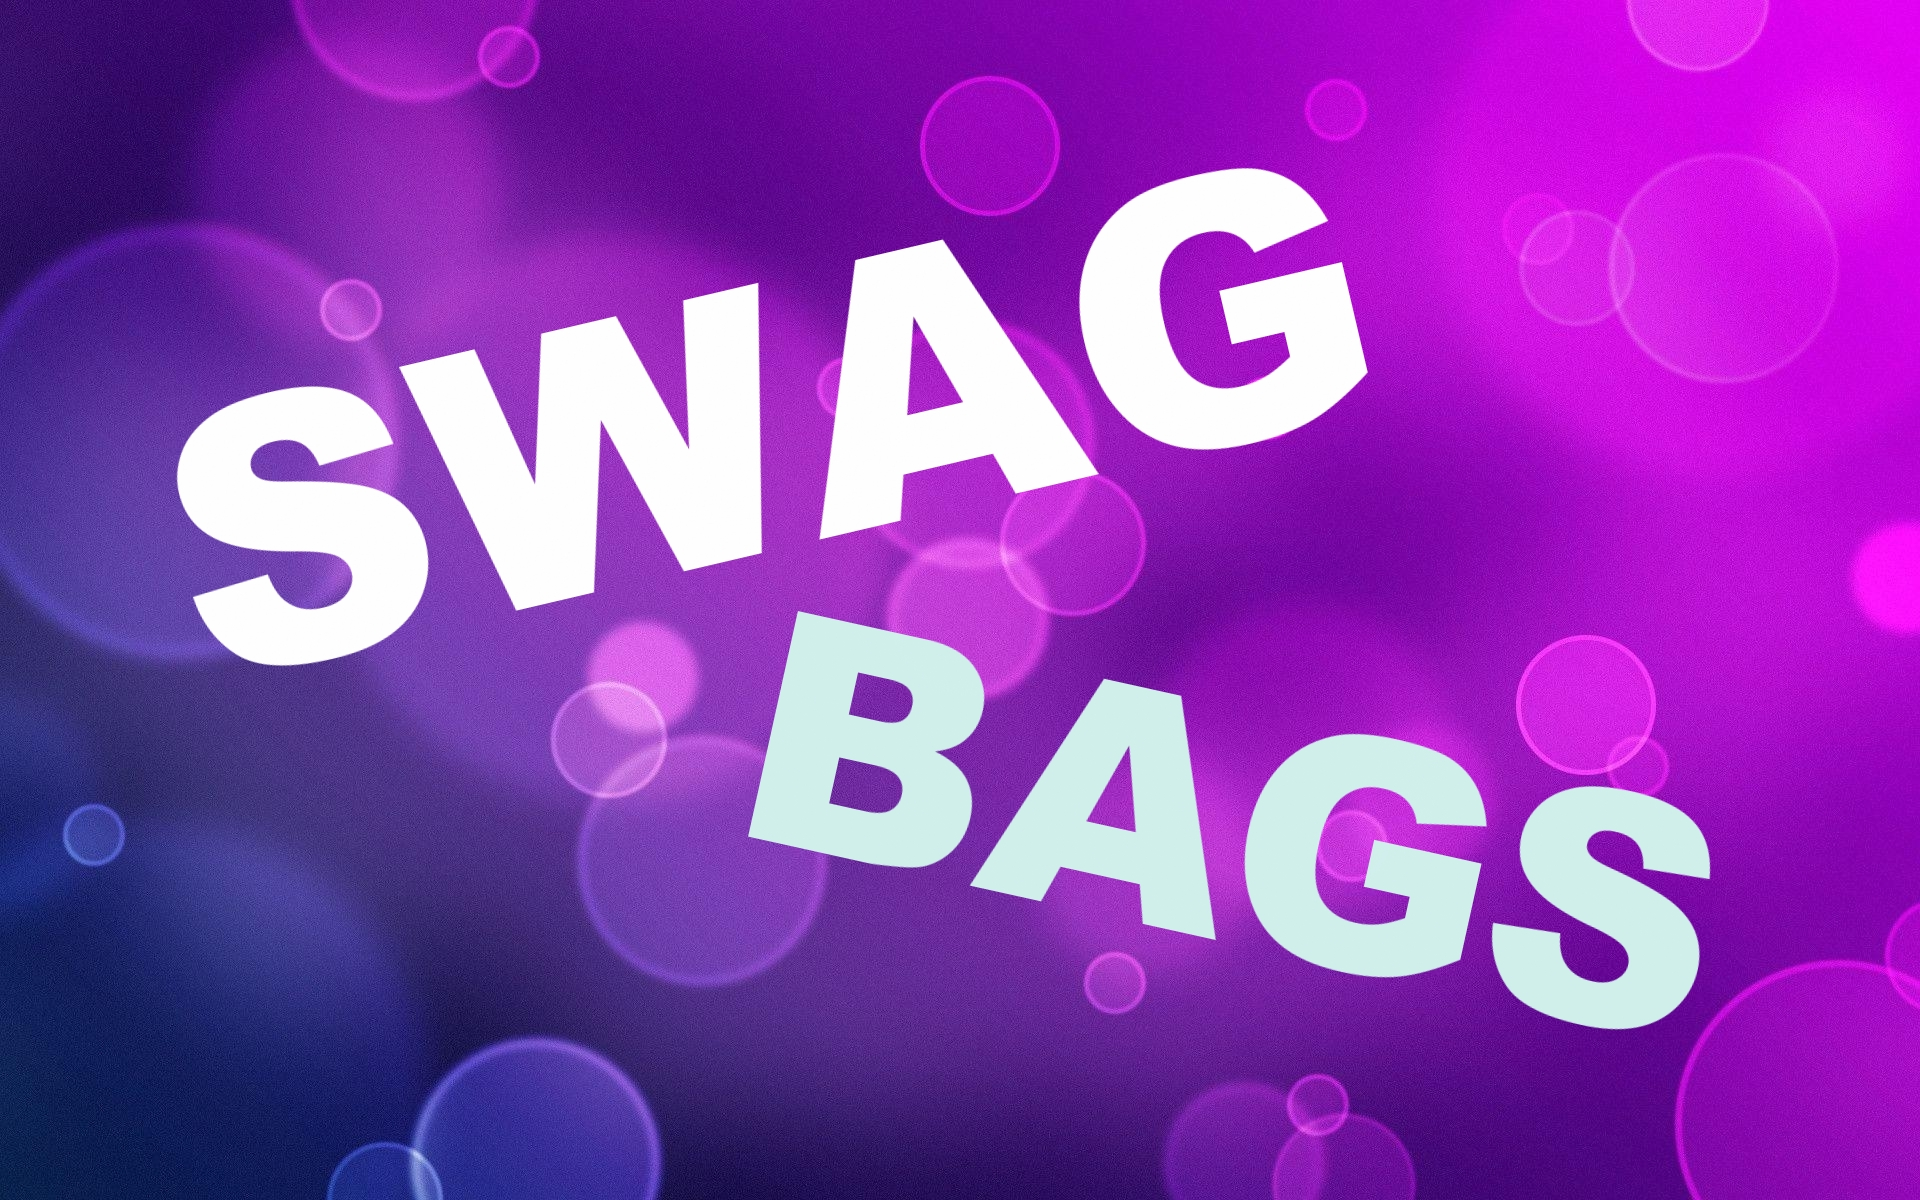 Take home some swag! - The 1st 100 ladies to check in at registration are guaranteed to receive our 6th annual Swag Bag!Registration is at 10:00am!